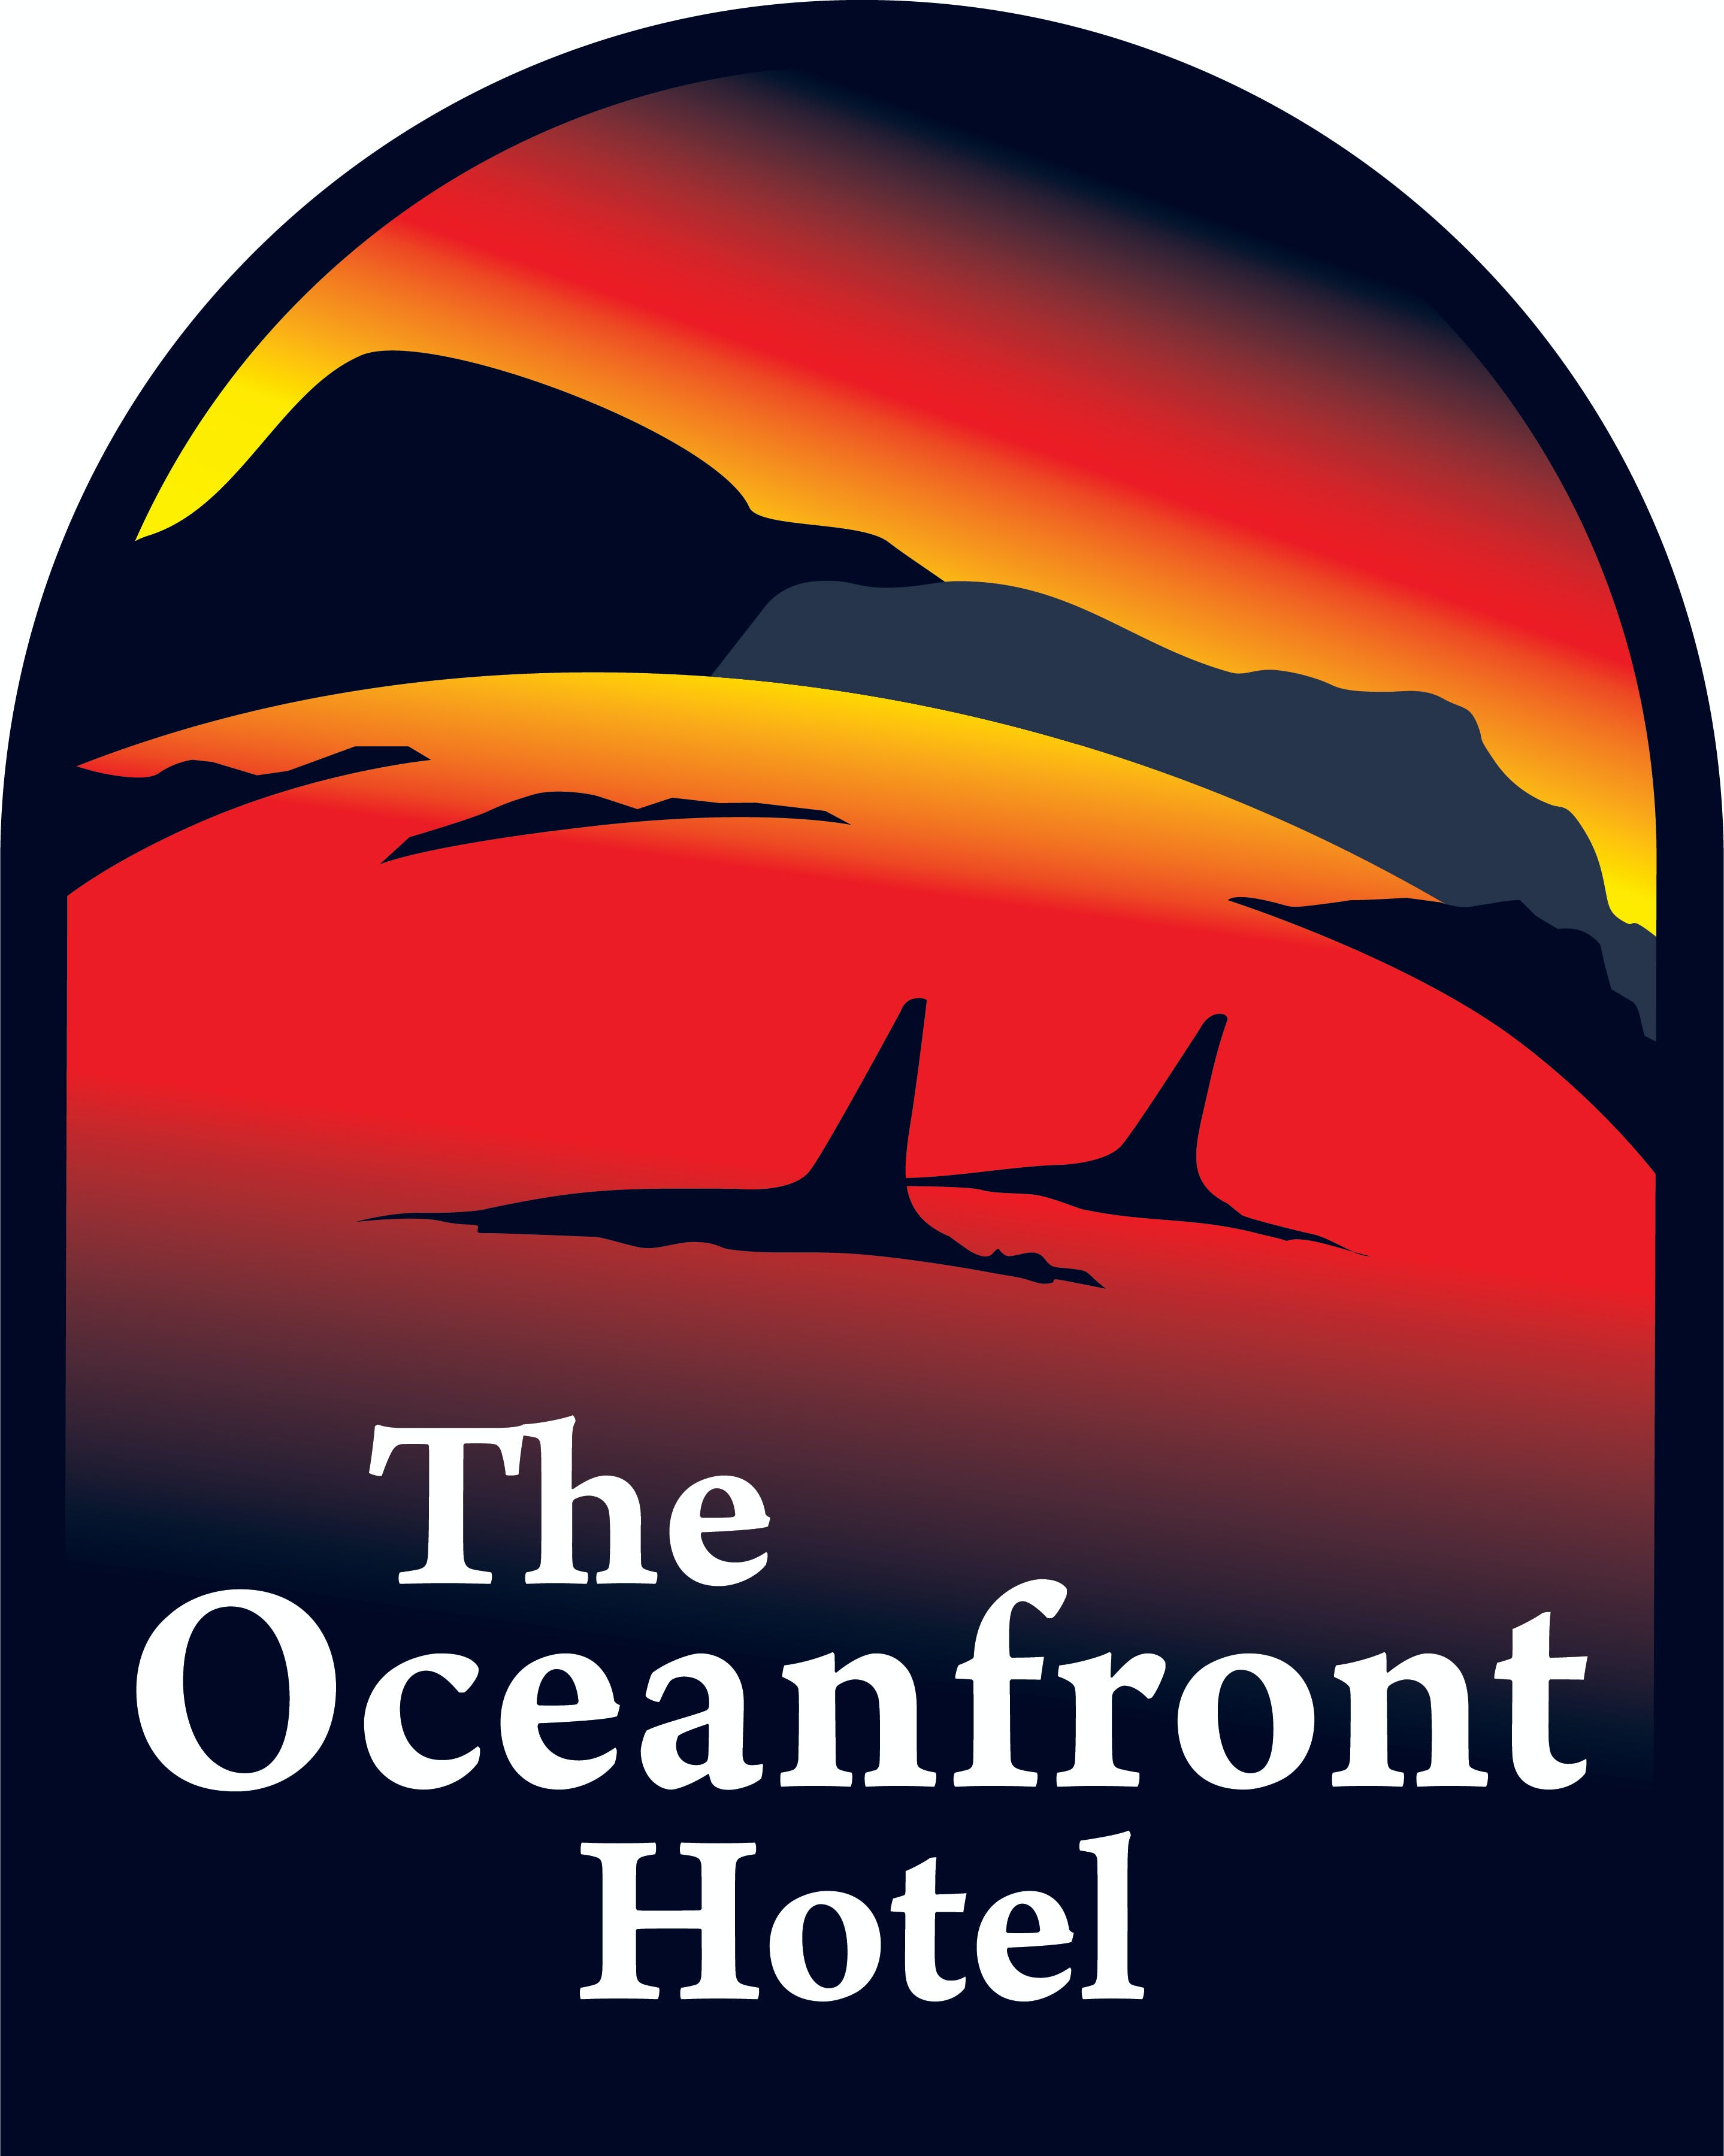 The Oceanfront Hotel